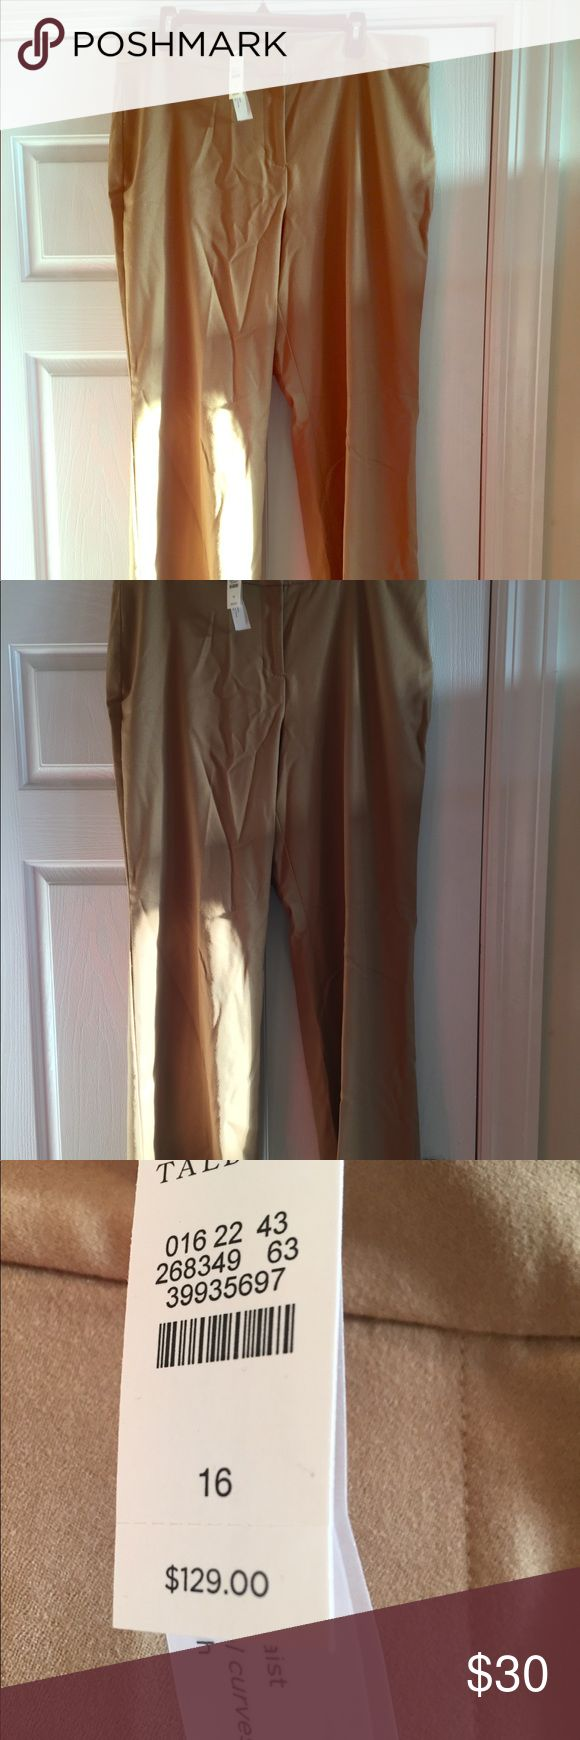 """Talbots Pants New with tags, Talbots pants size 16 curvy. 42""""length, 19"""" waist. These are made for a tall woman or a lady that loves to rock some high heels. Bundle your likes for an amazing offer. Talbots Pants Trousers"""